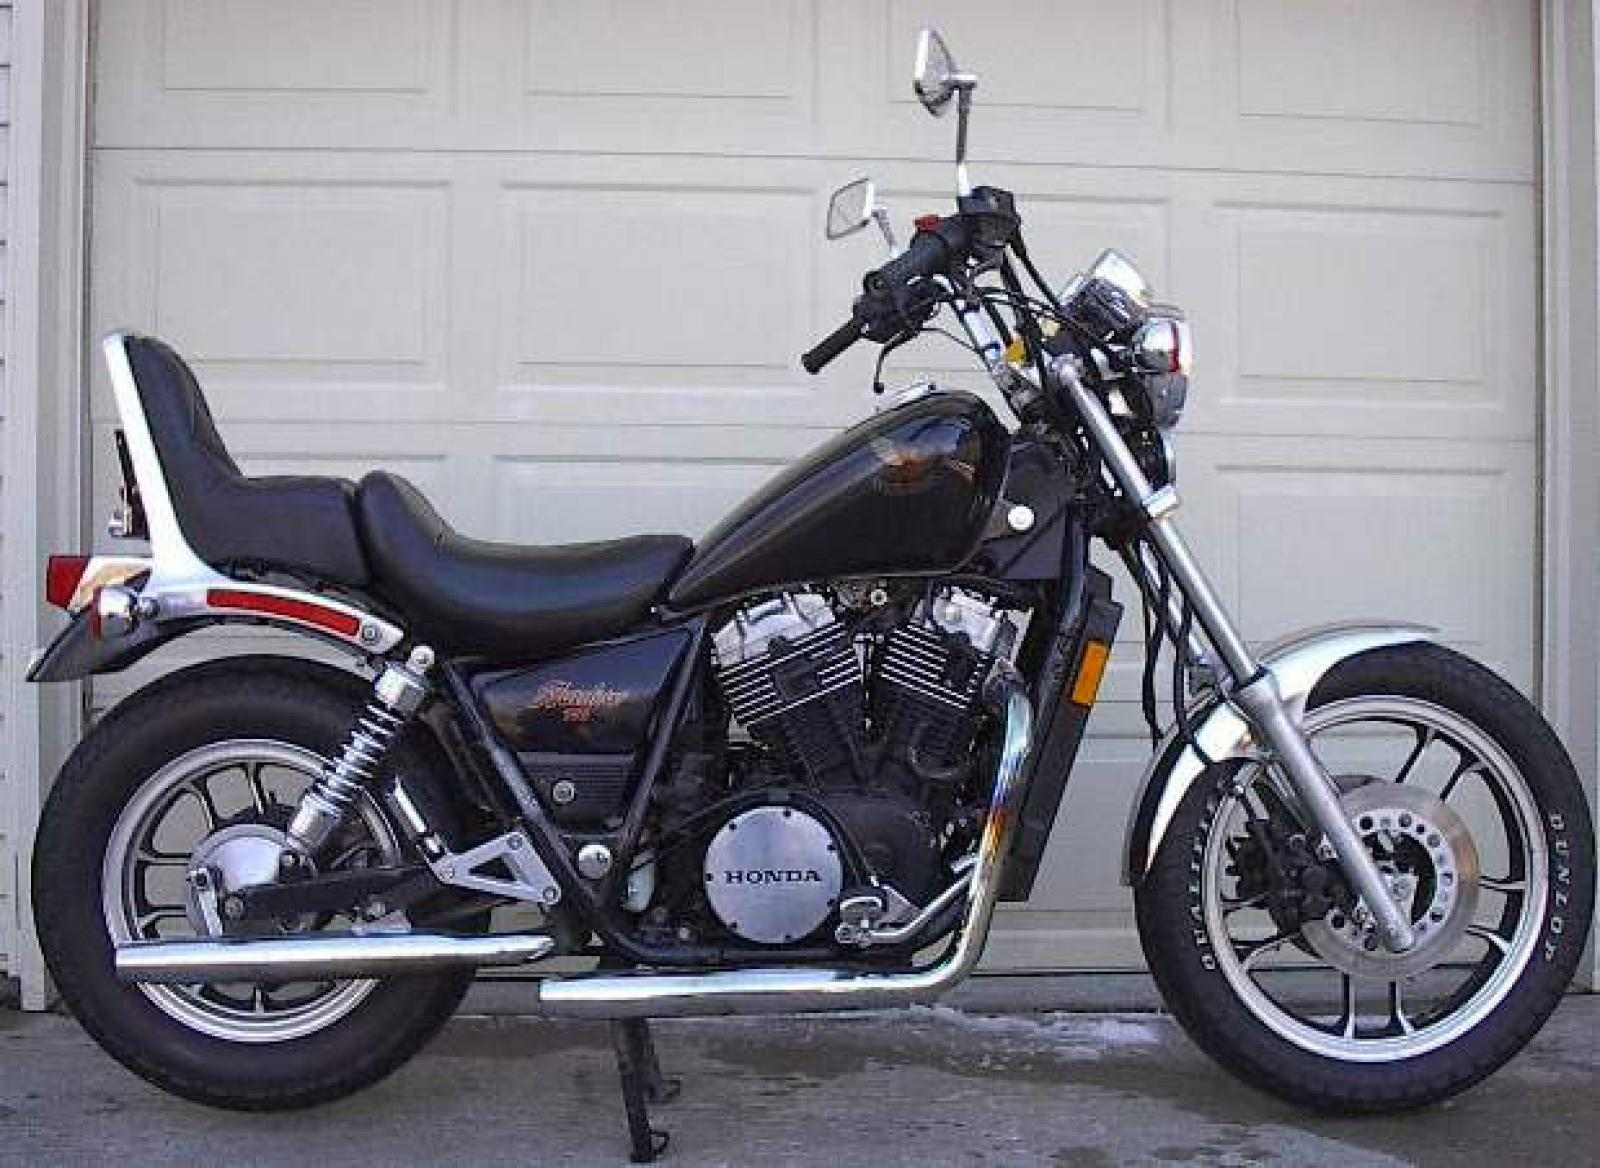 1983 honda shadow 750 for all moto brands 1983 honda shadow 1983 honda vt750c shadow motozombdrivecom